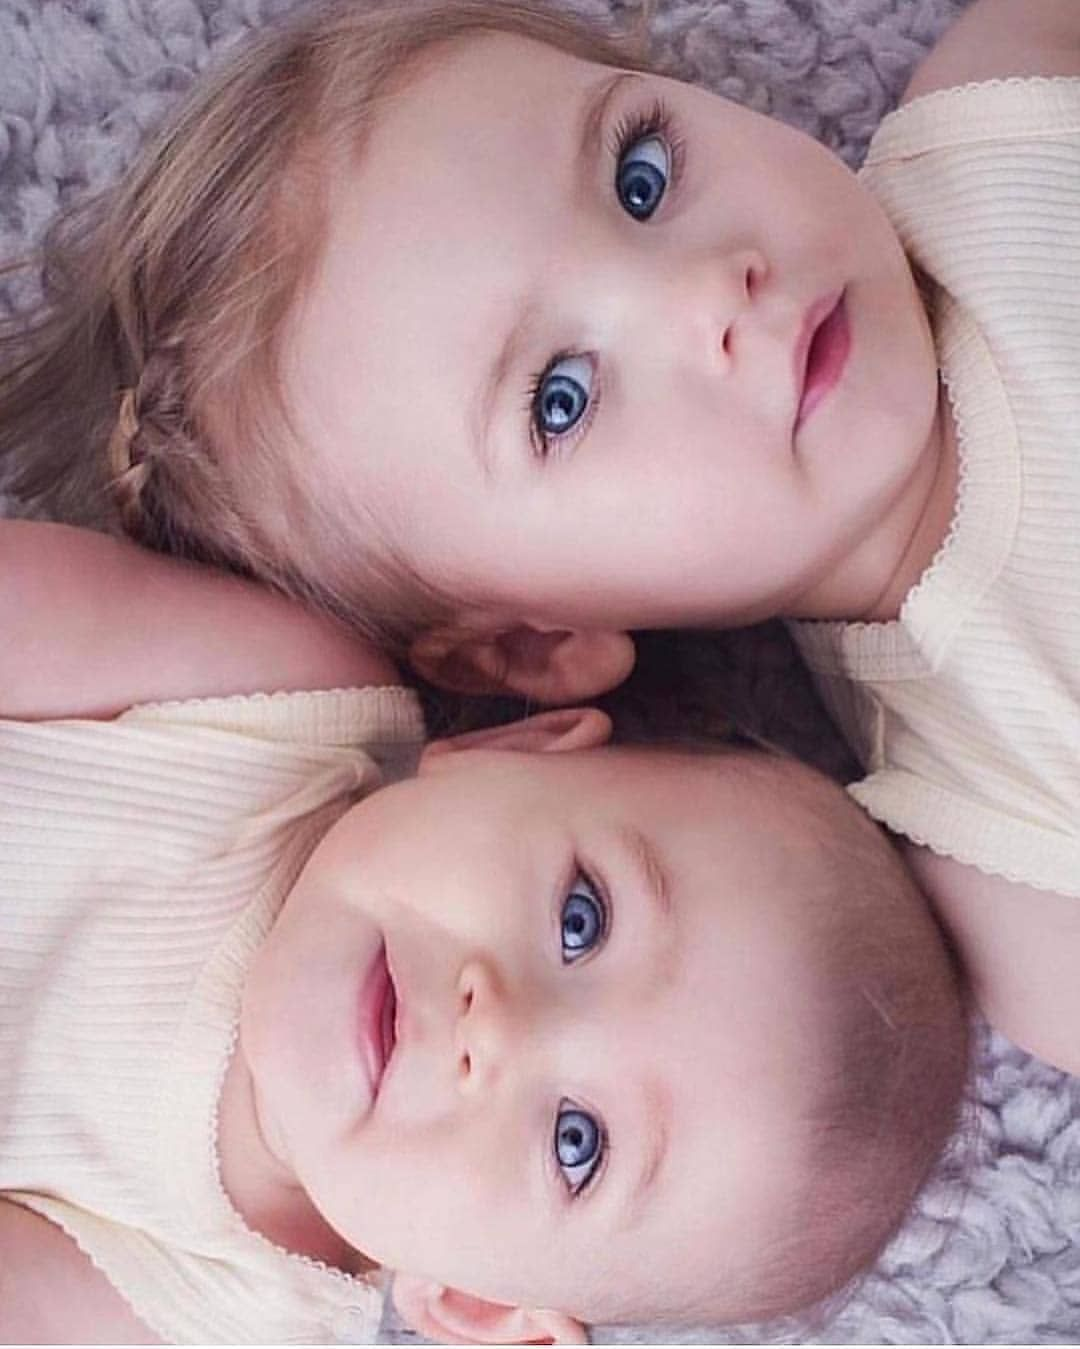 Baby Kids Family On Instagram So Beautiful Baby So Sweet This Eyes Machaalllah ماشا In 2020 Cute Baby Pictures Blue Eyed Baby Beautiful Babies